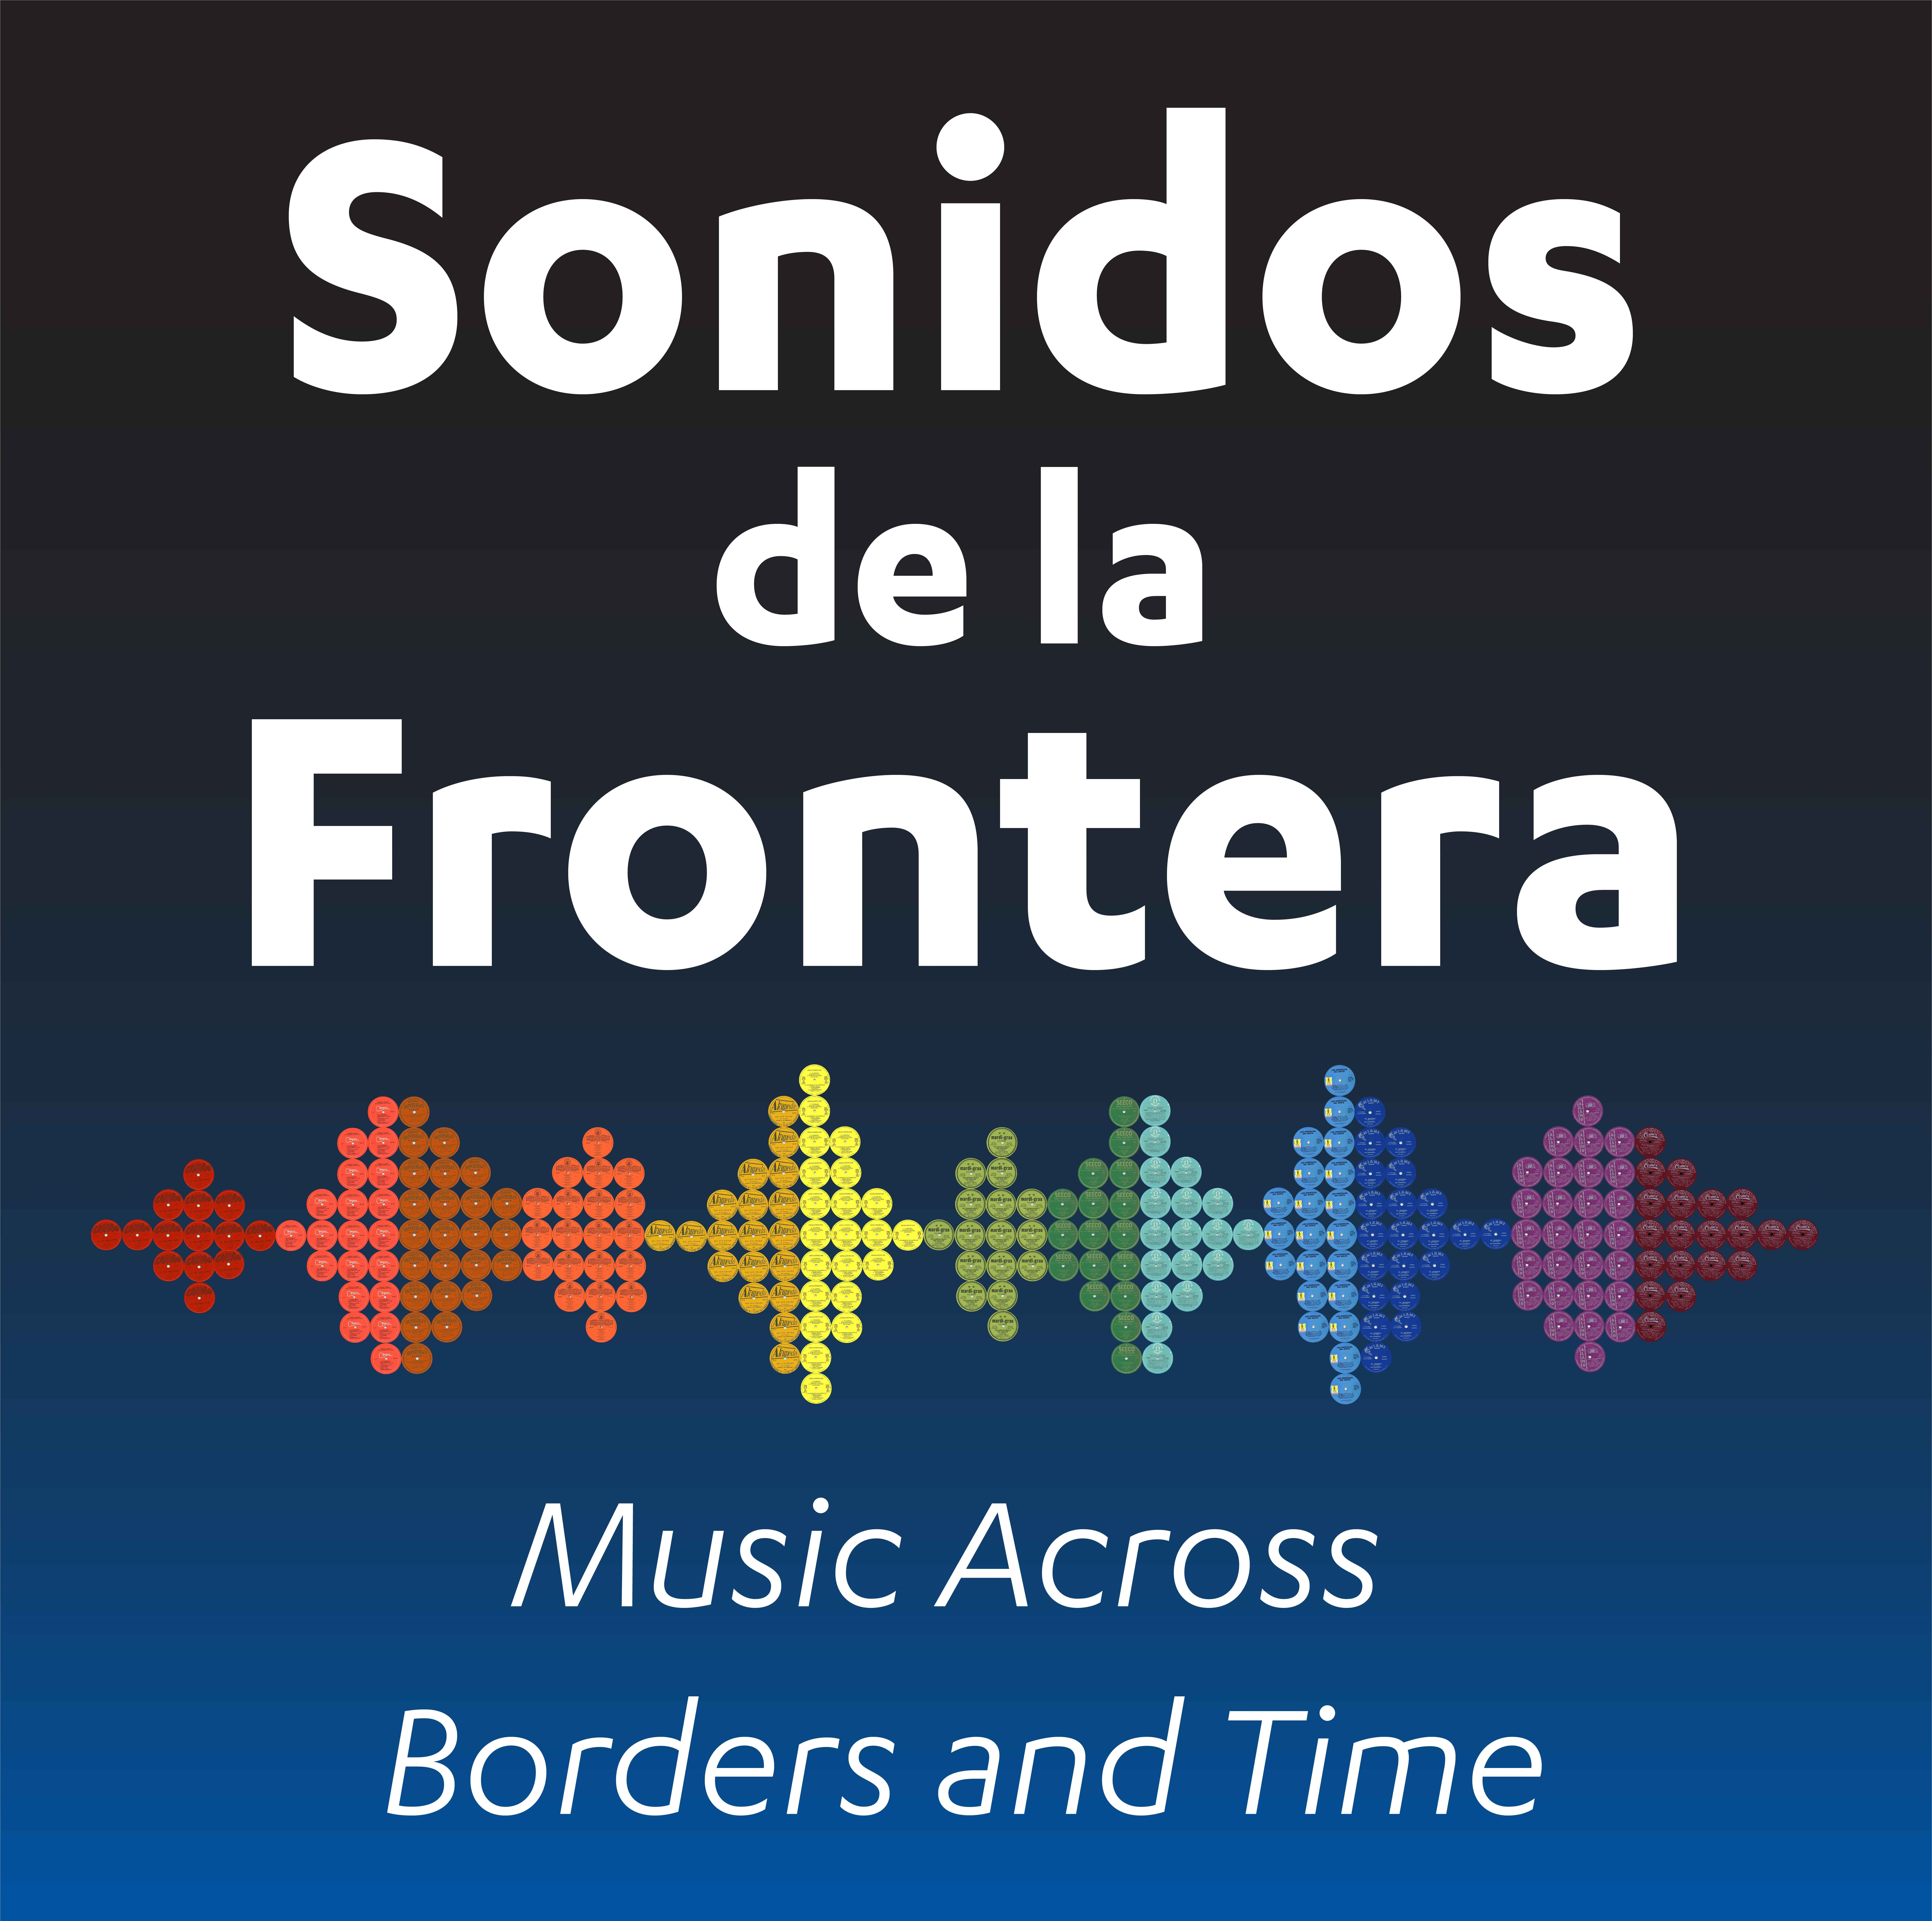 Sonidos de la Frontera: Music across Borders and Time